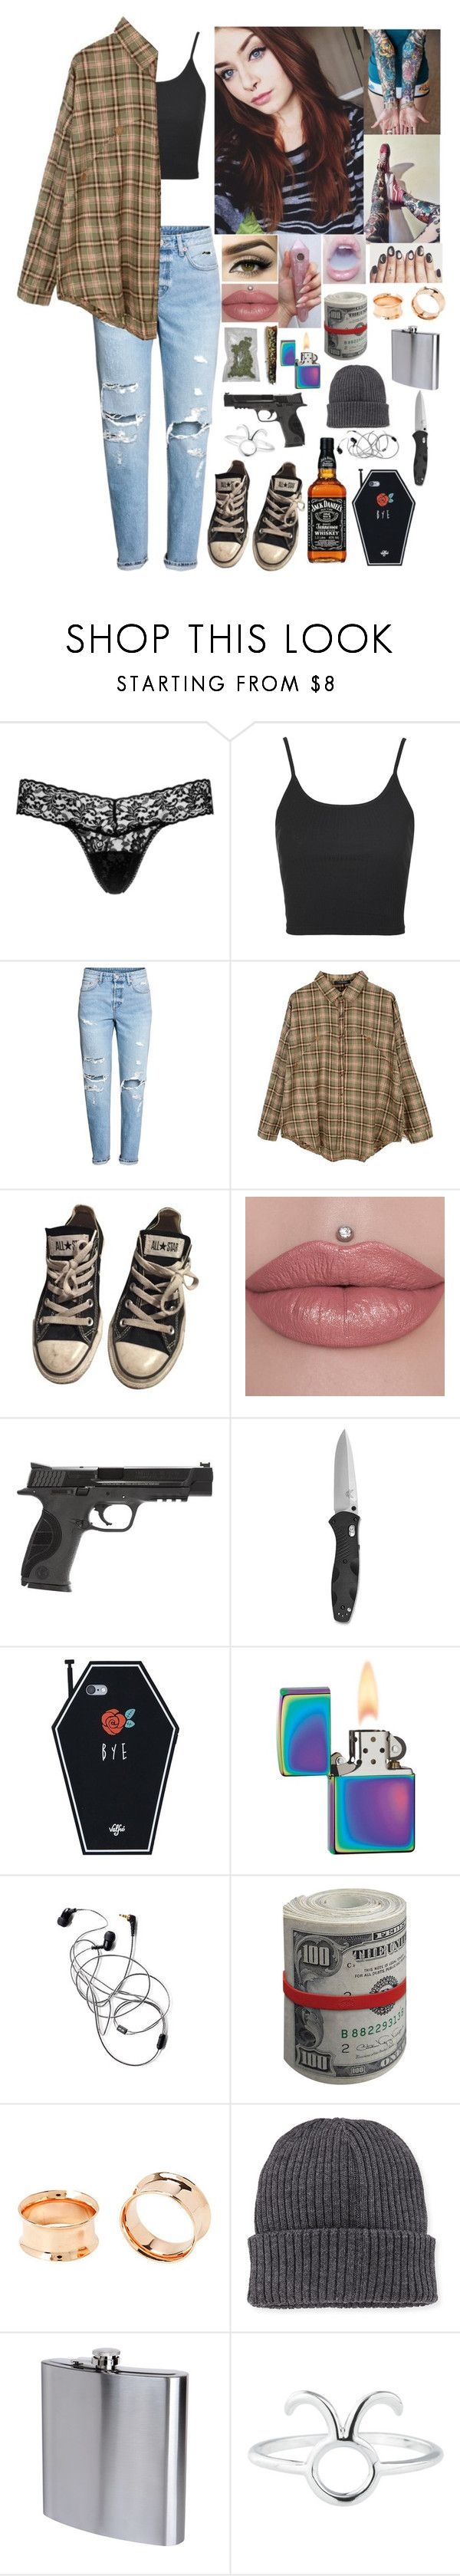 """Ara"" by partypoisonkilljoy ❤ liked on Polyvore featuring Hanky Panky, Topshop, H&M, Retrò, Converse, Smith & Wesson, Zippo, Moncler, The Sharper Image and Rock 'N Rose"